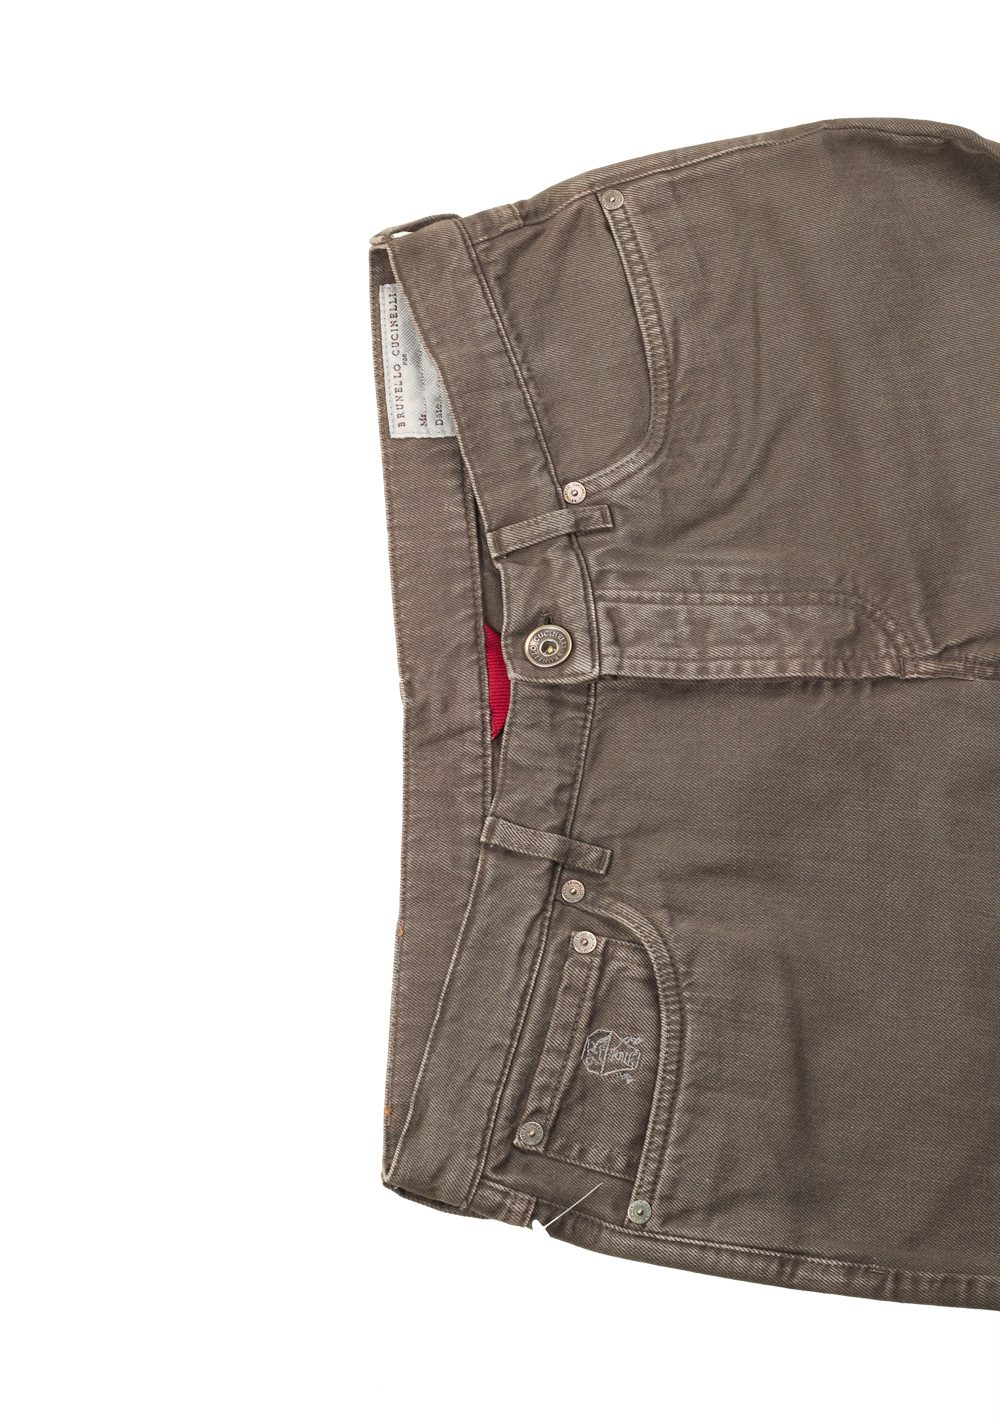 Brunello Cucinelli Brownish Green Jeans Trousers Size 48 / 32 U.S. | Costume Limité